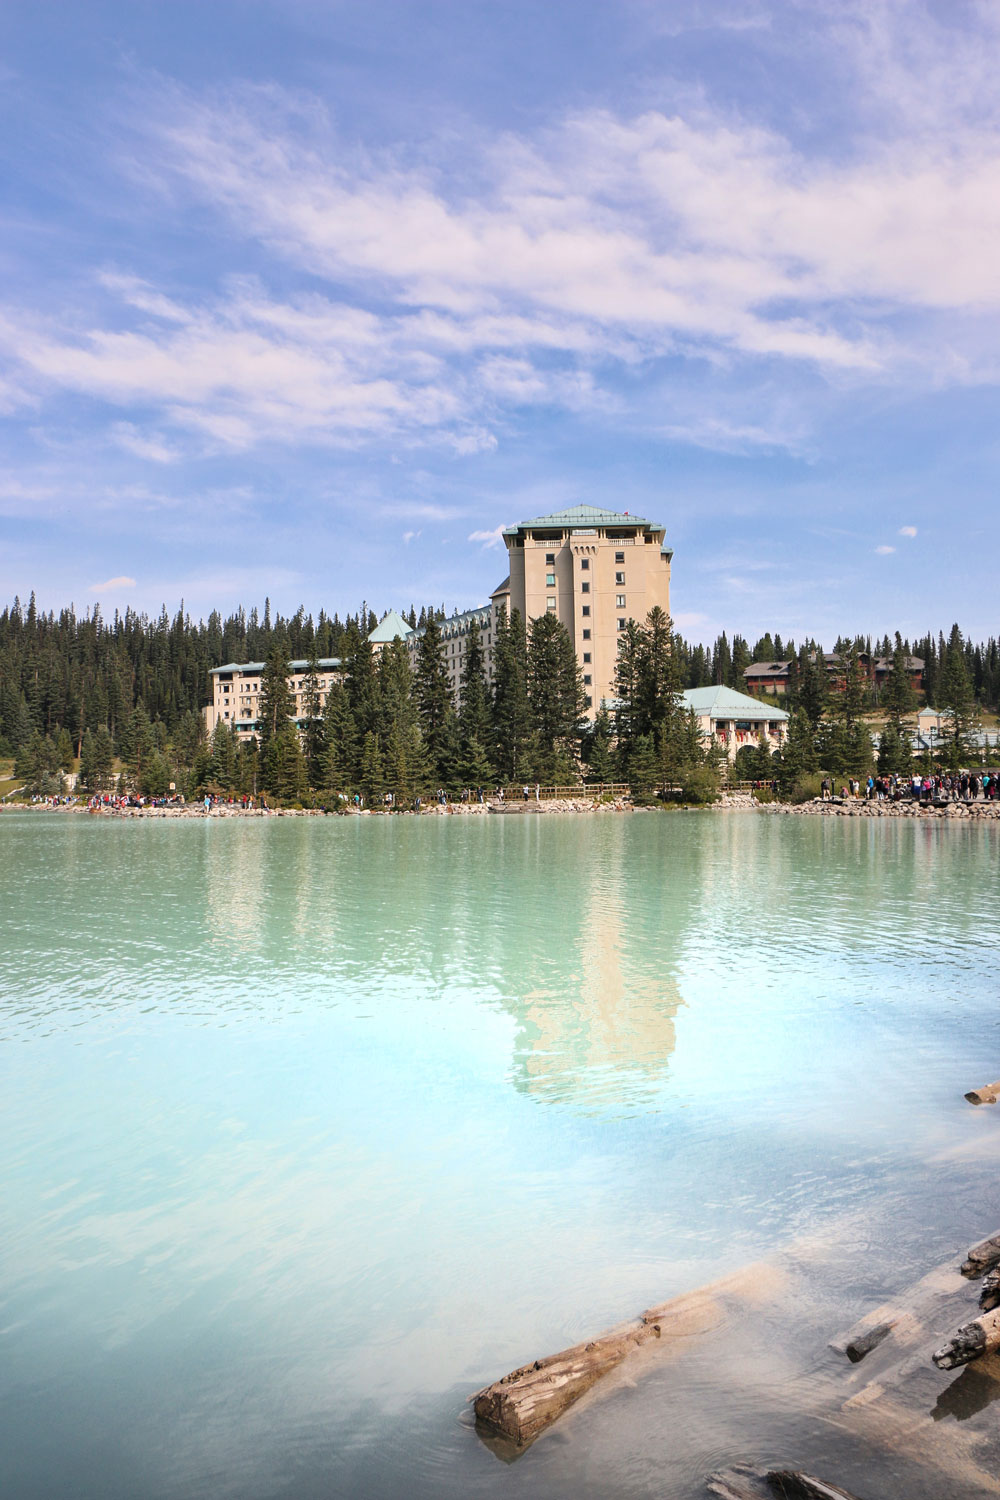 Fairmont Chateau at Lake Louise in Canada